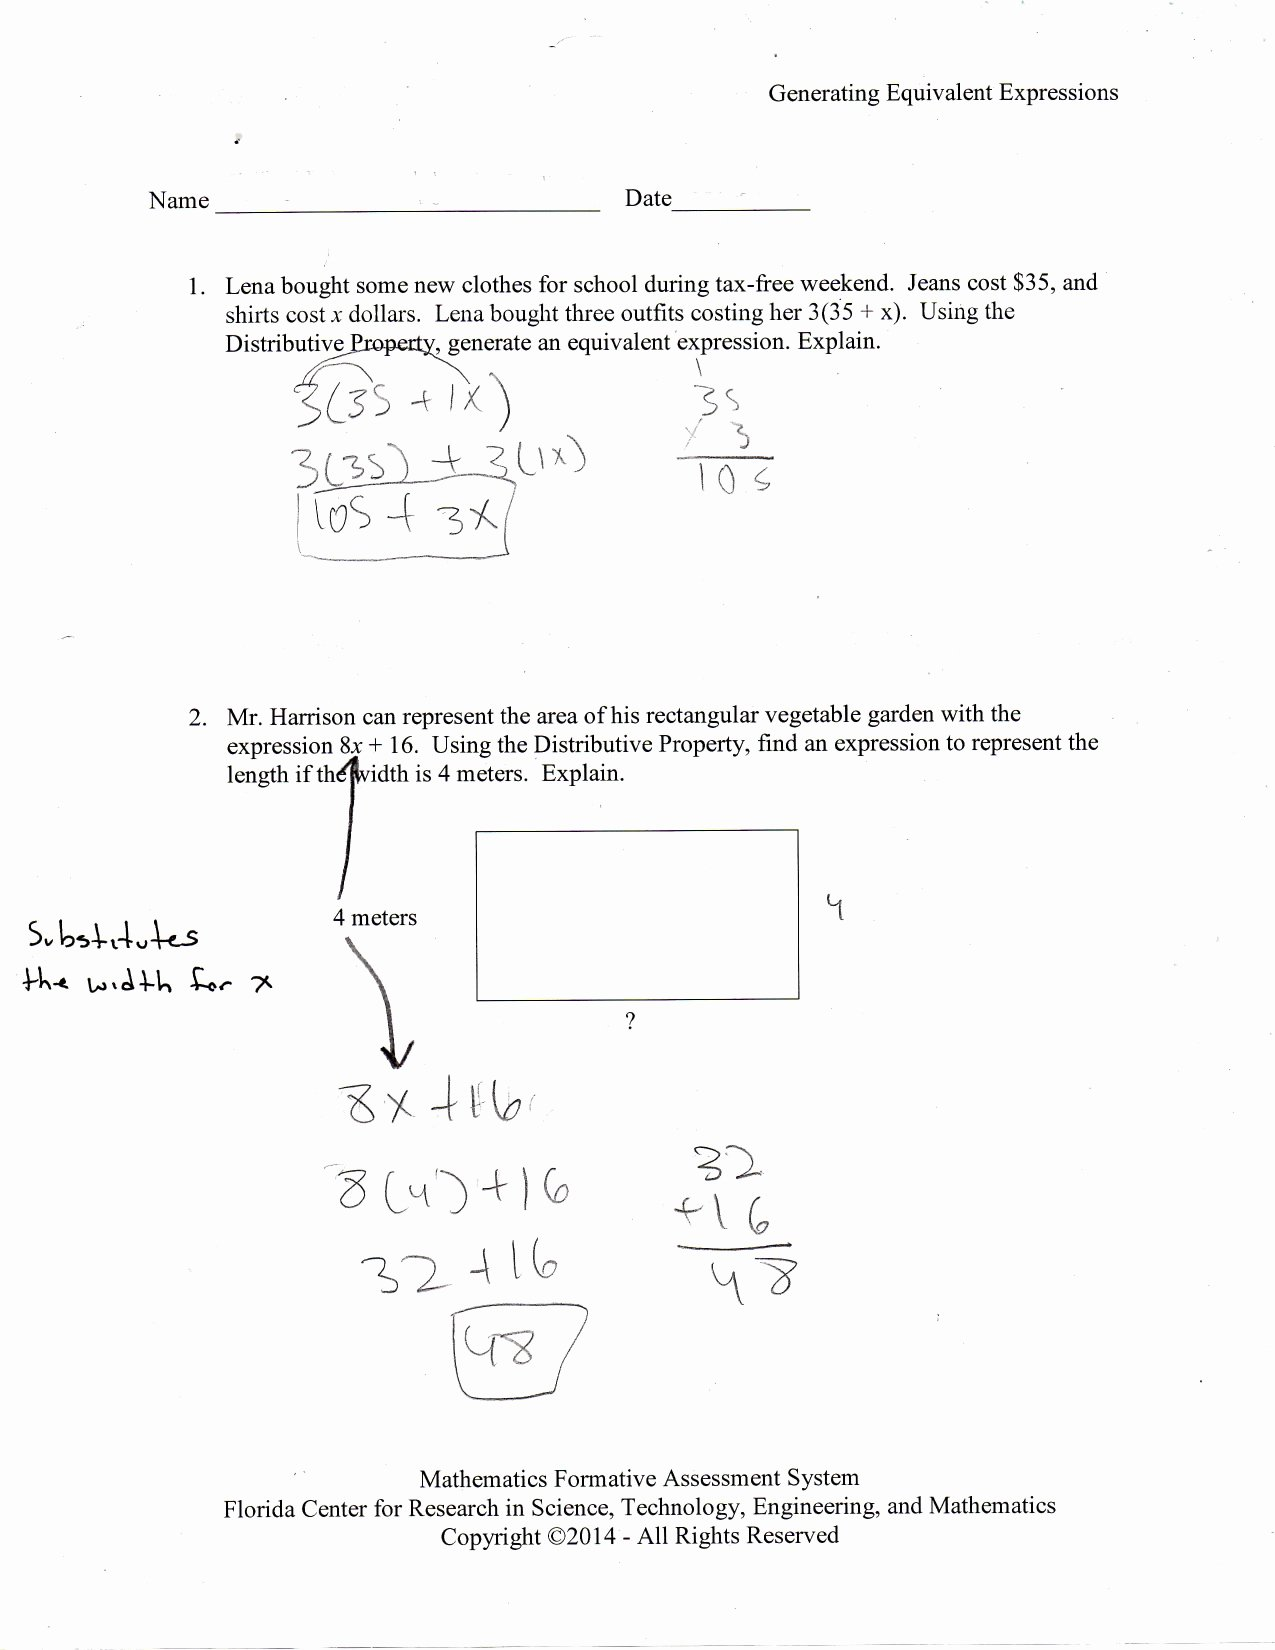 Equivalent Expressions Worksheet 6th Grade Inspirational Creating and solving Equations Lesson 2 Answers Worksheet